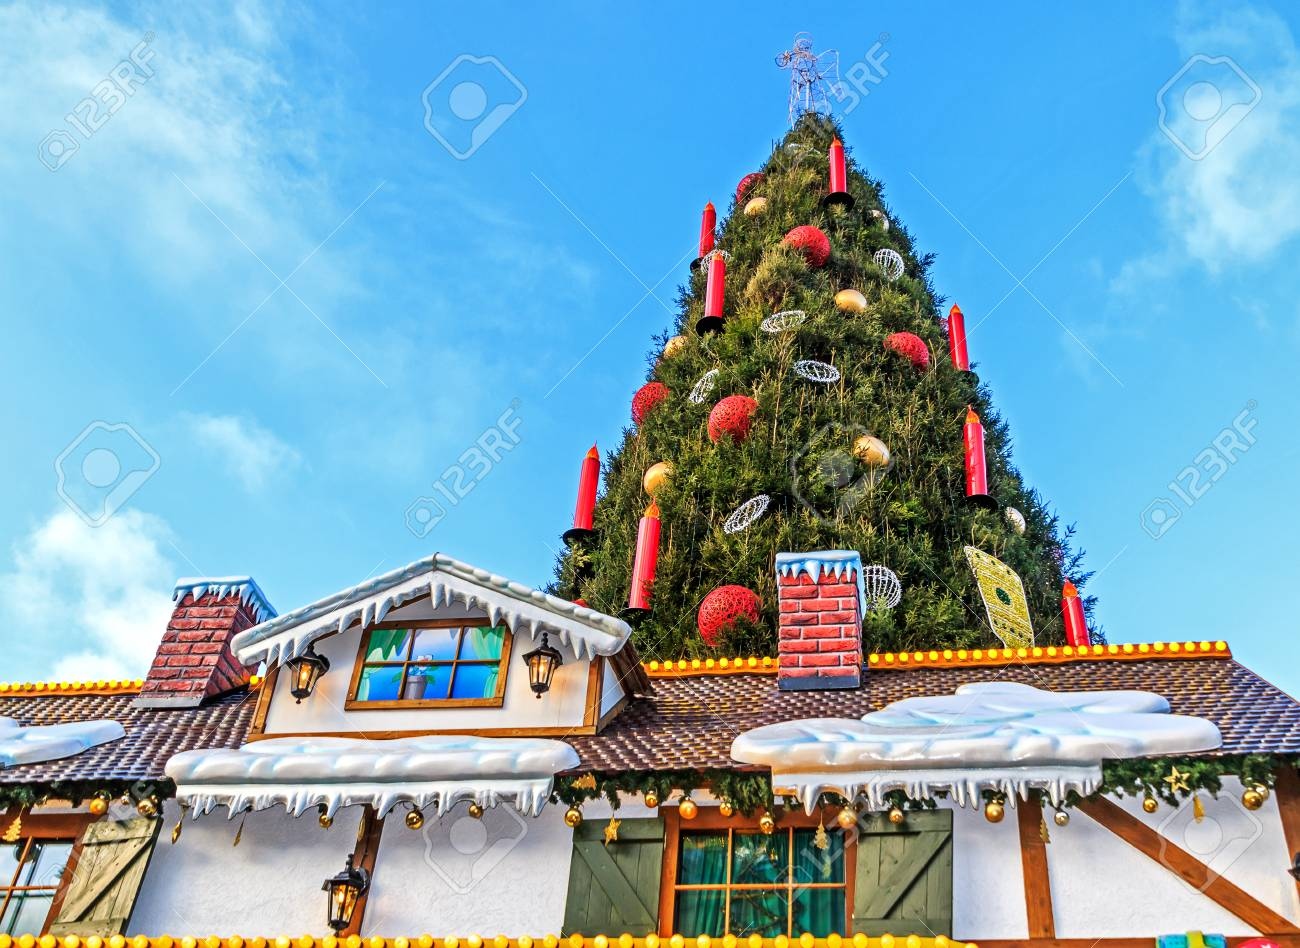 Christmas Market In The German Town Of Dortmund Stock Photo Picture And Royalty Free Image Image 95395288